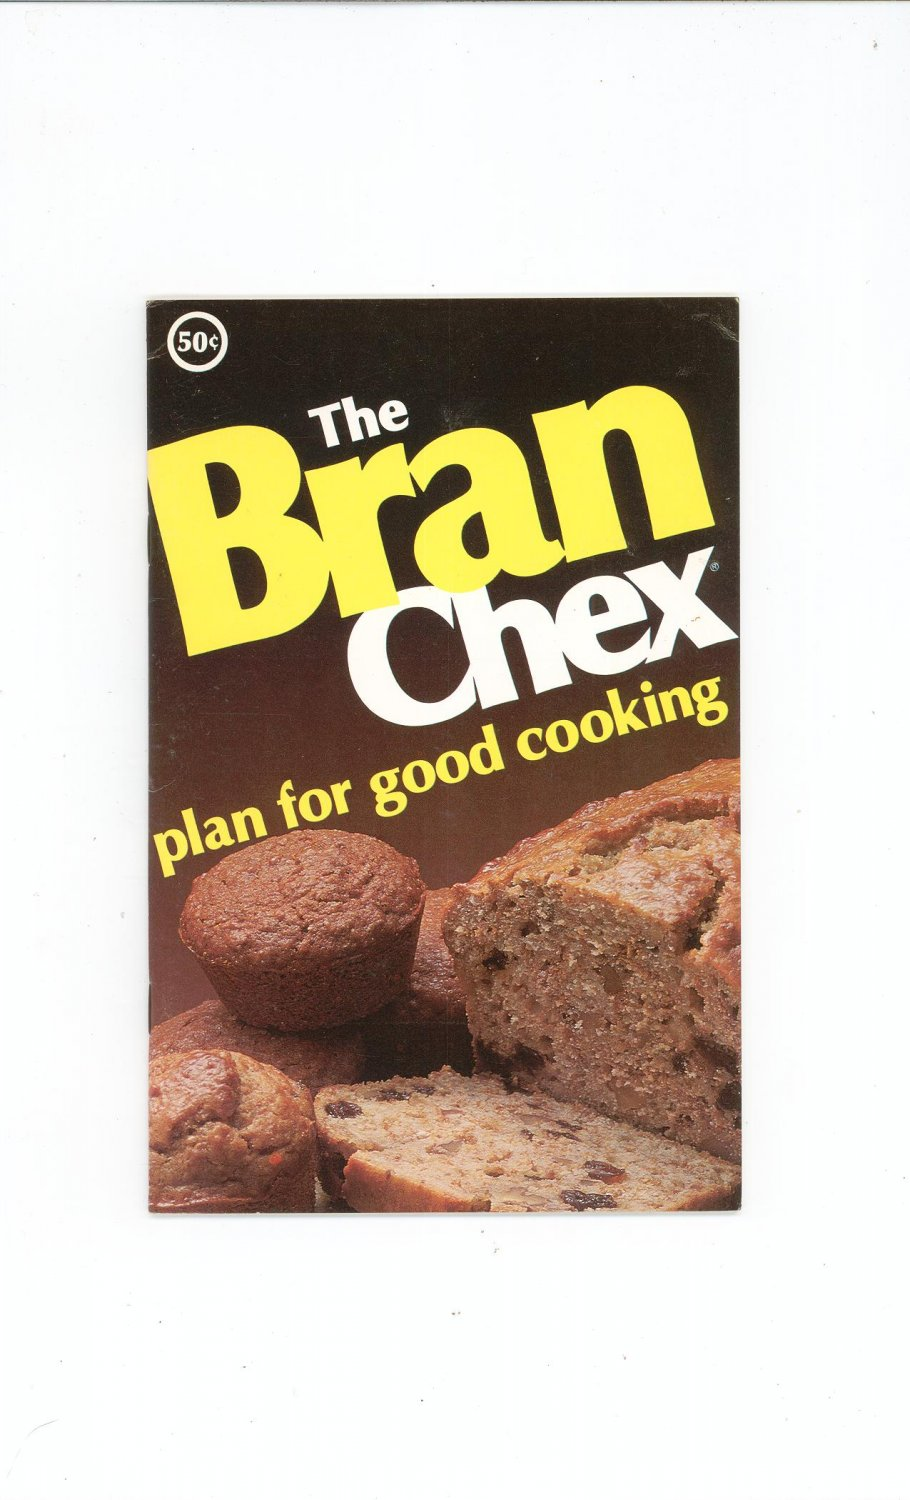 The Bran Chex Plan For Good Cooking Cookbook